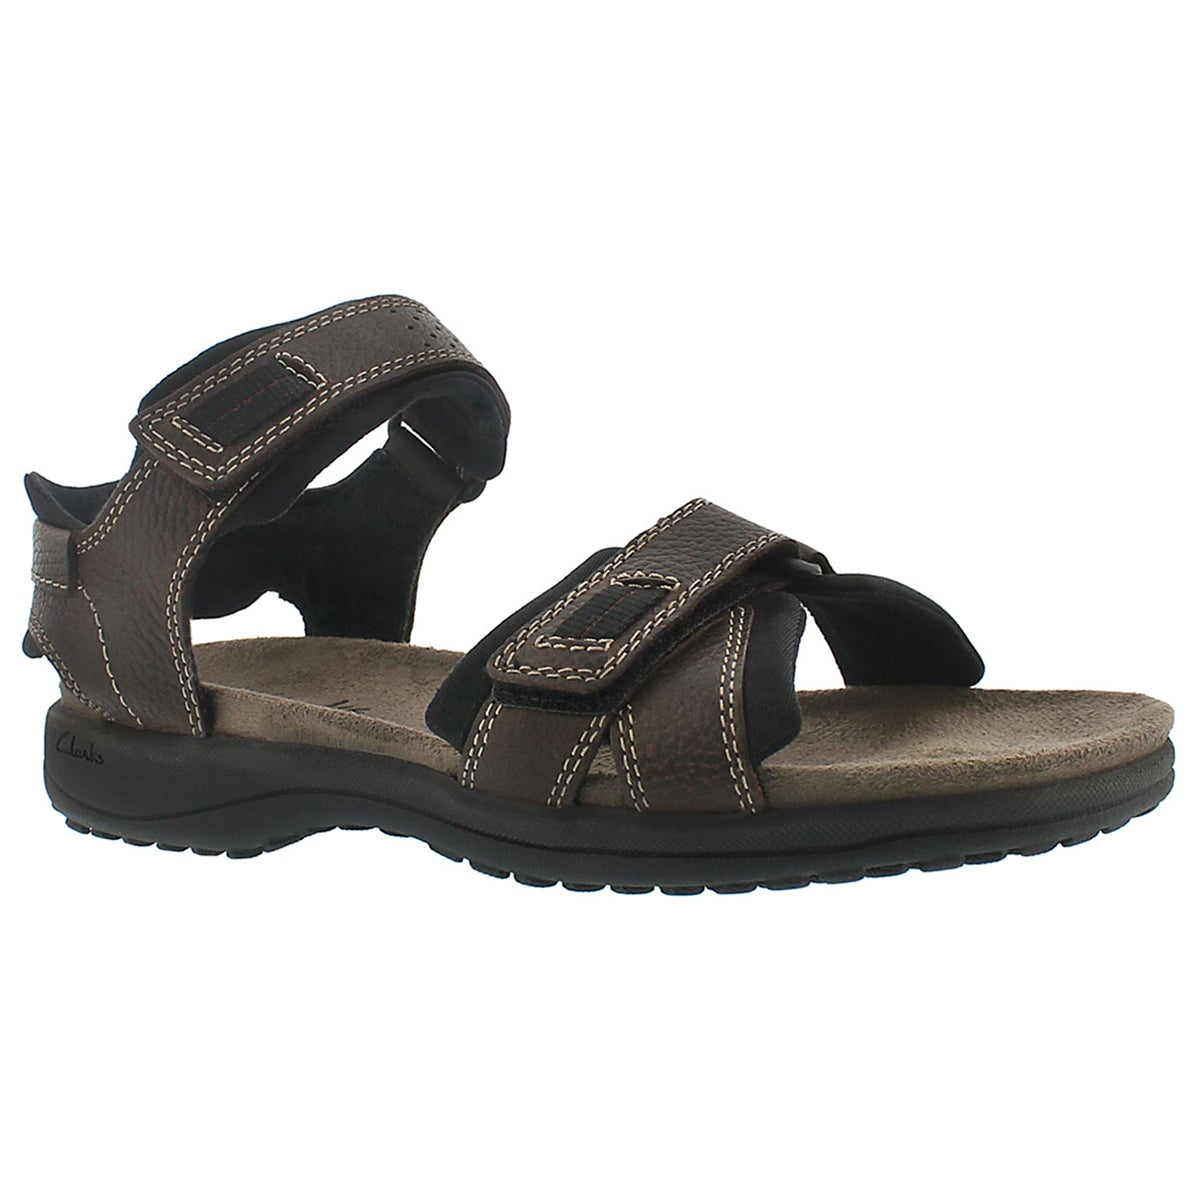 Mns Keating brown 2 strap sandal